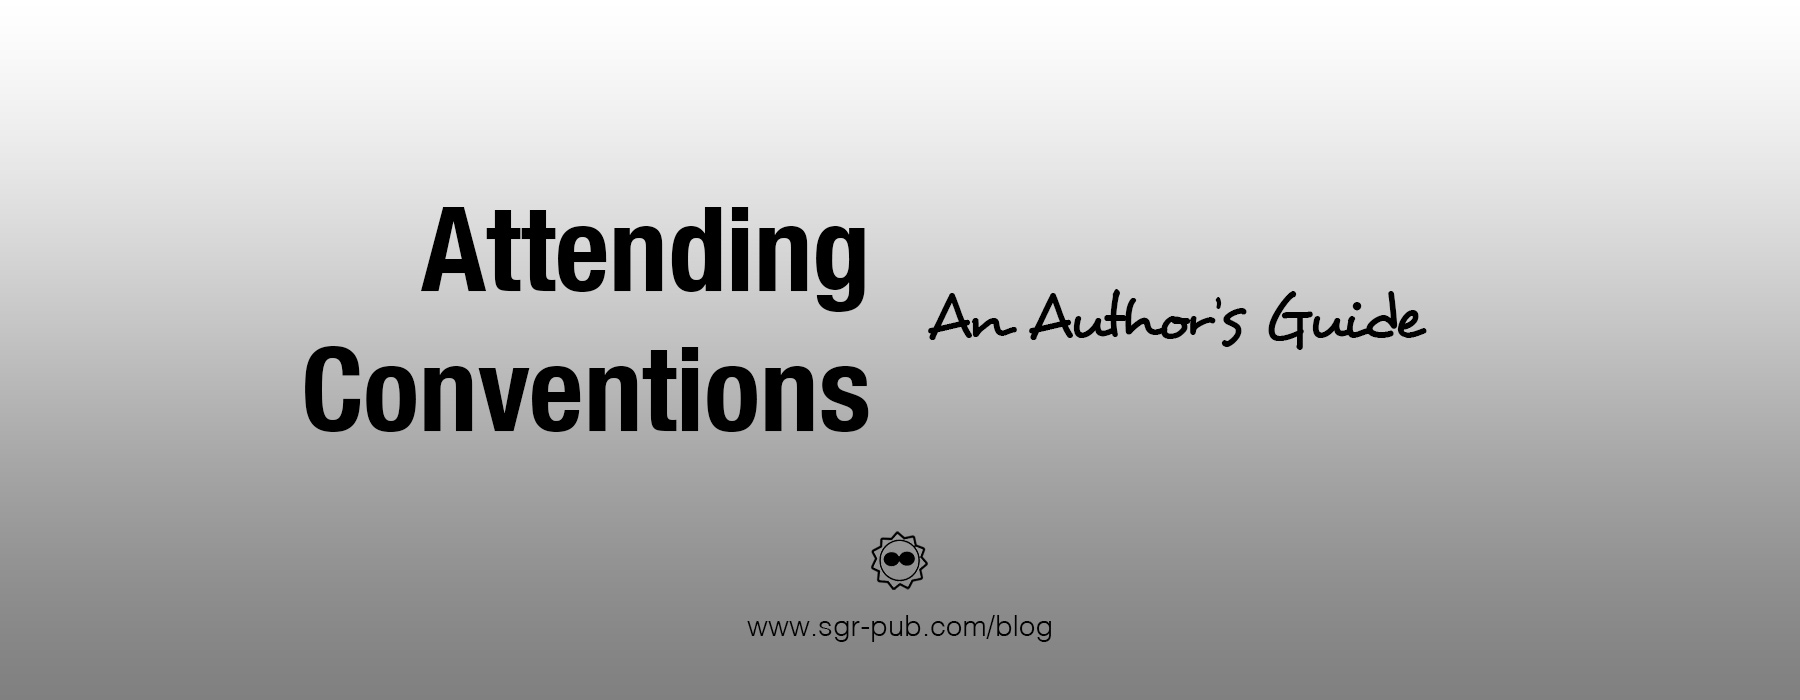 Attending Conventions: An Author's Guide